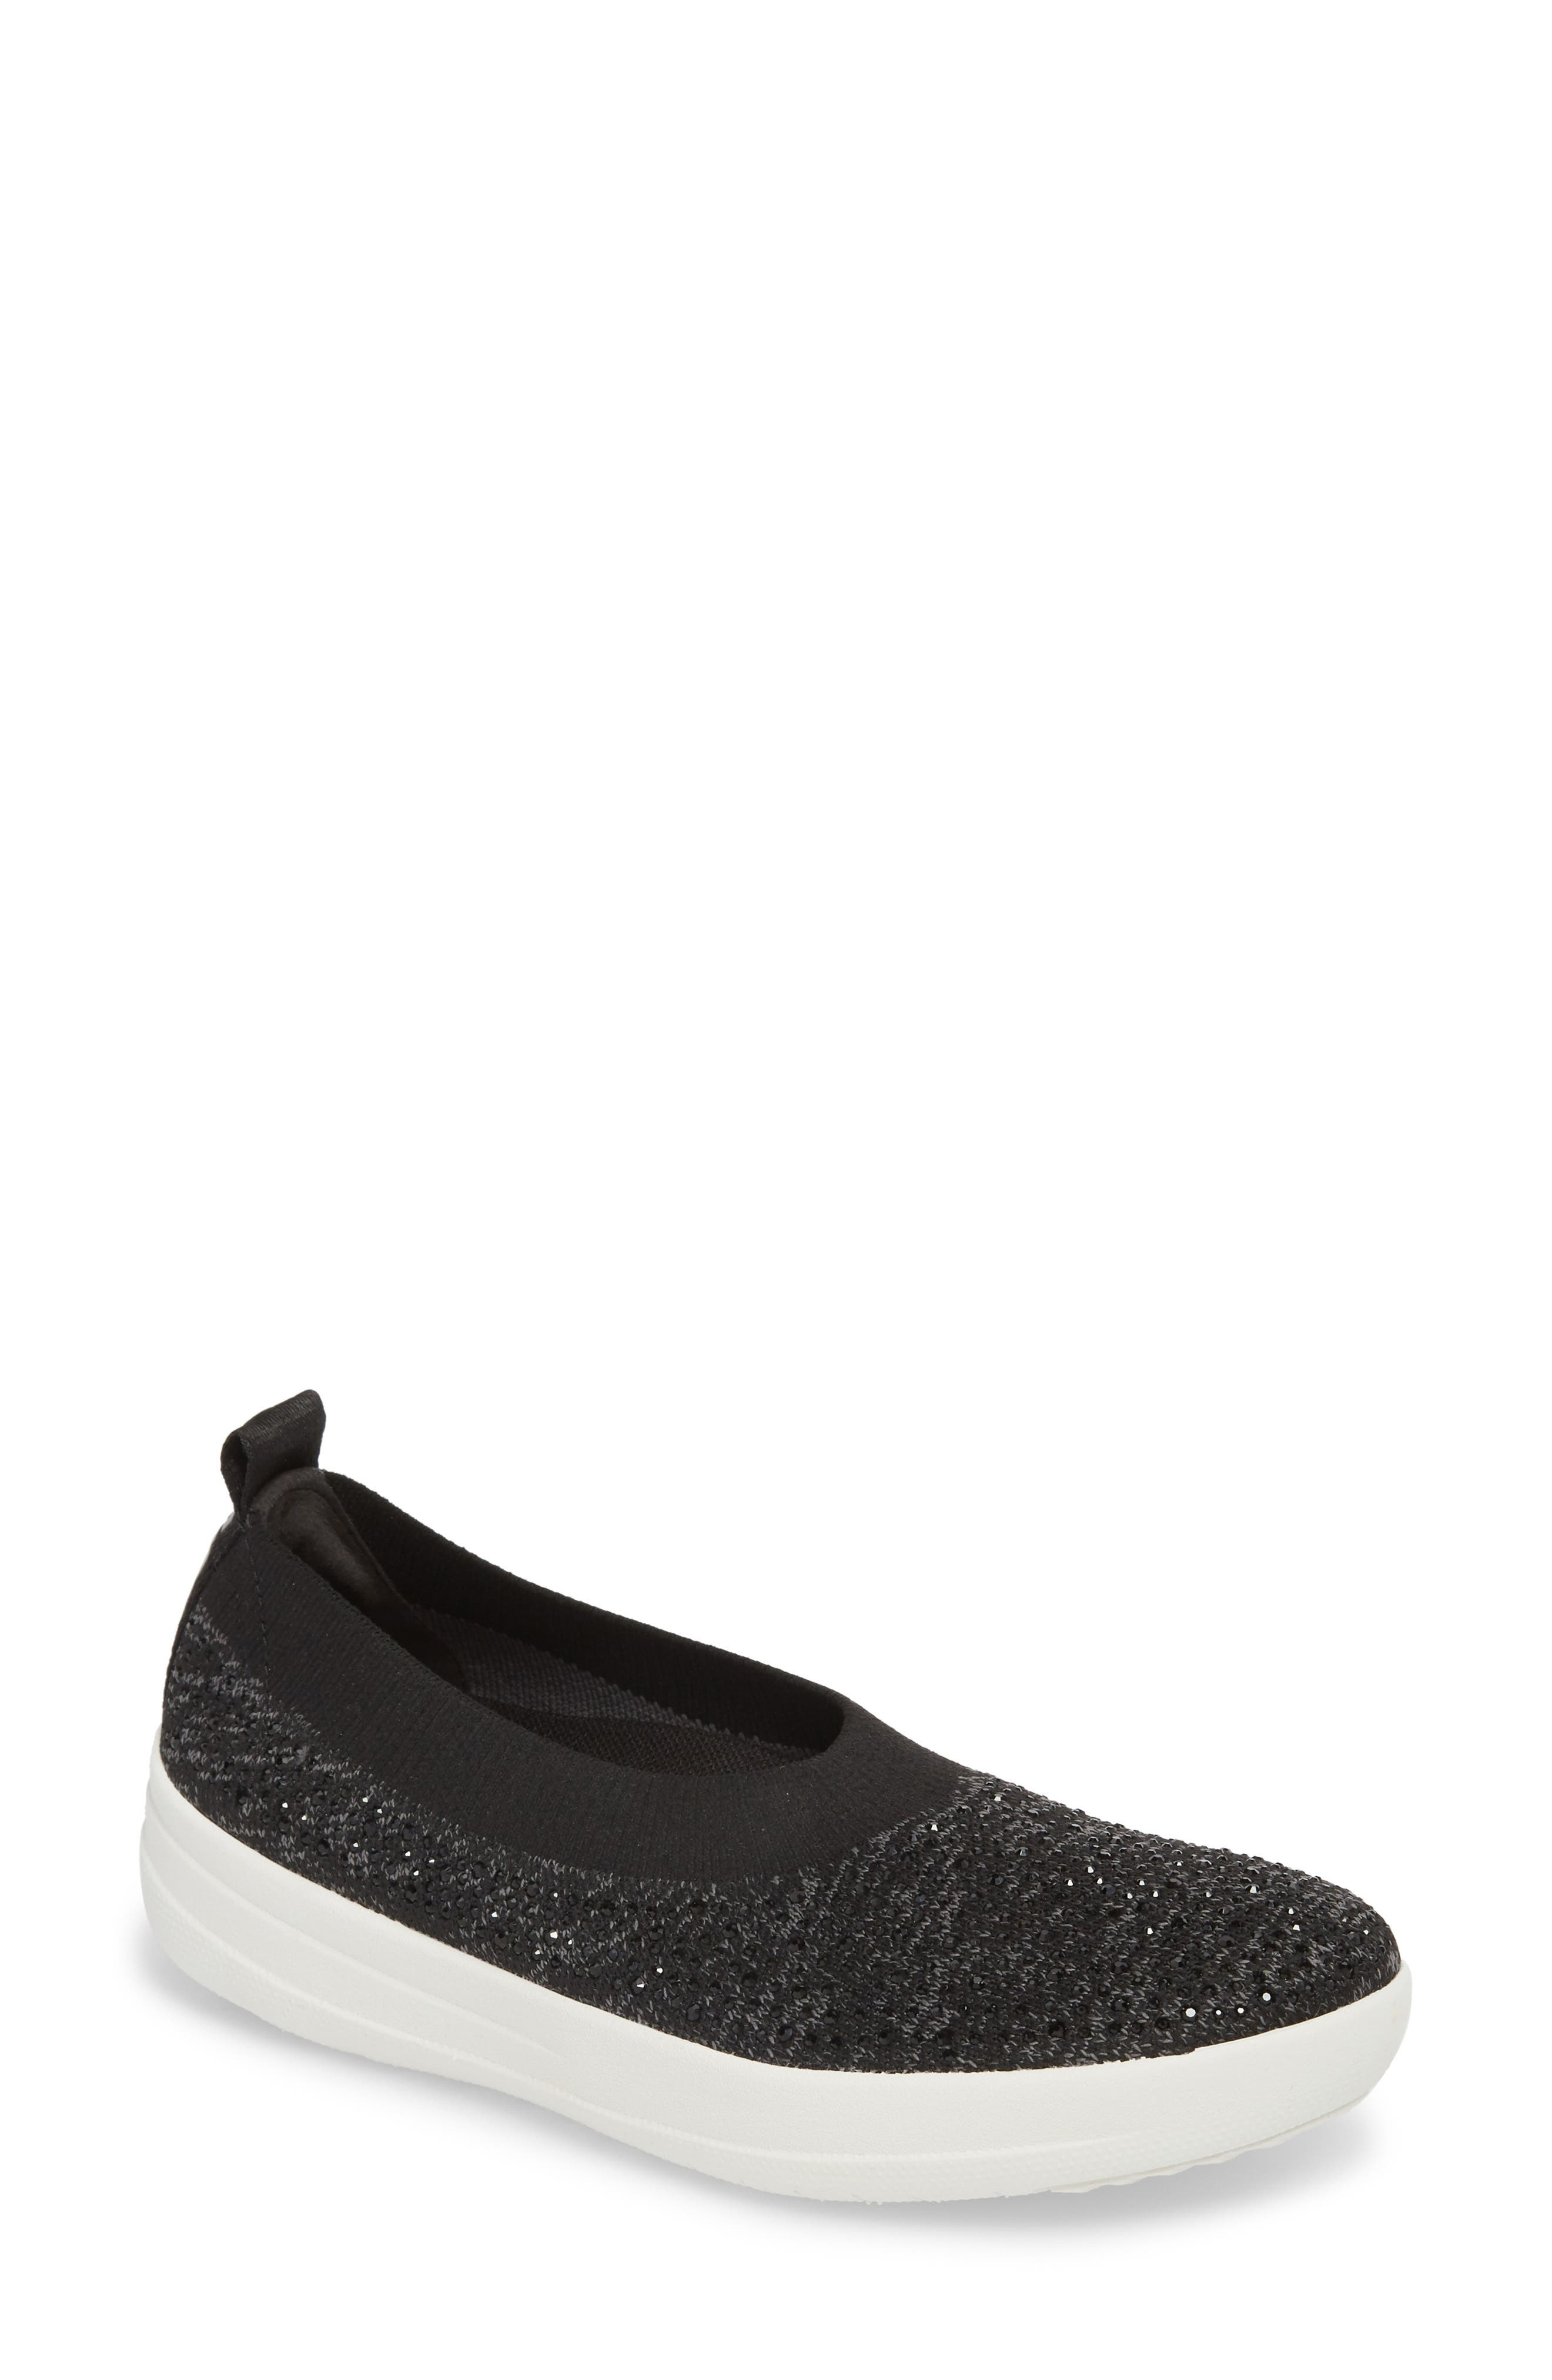 Uberknit Slip-On Sneaker,                         Main,                         color, BLACK/ SOFT GREY